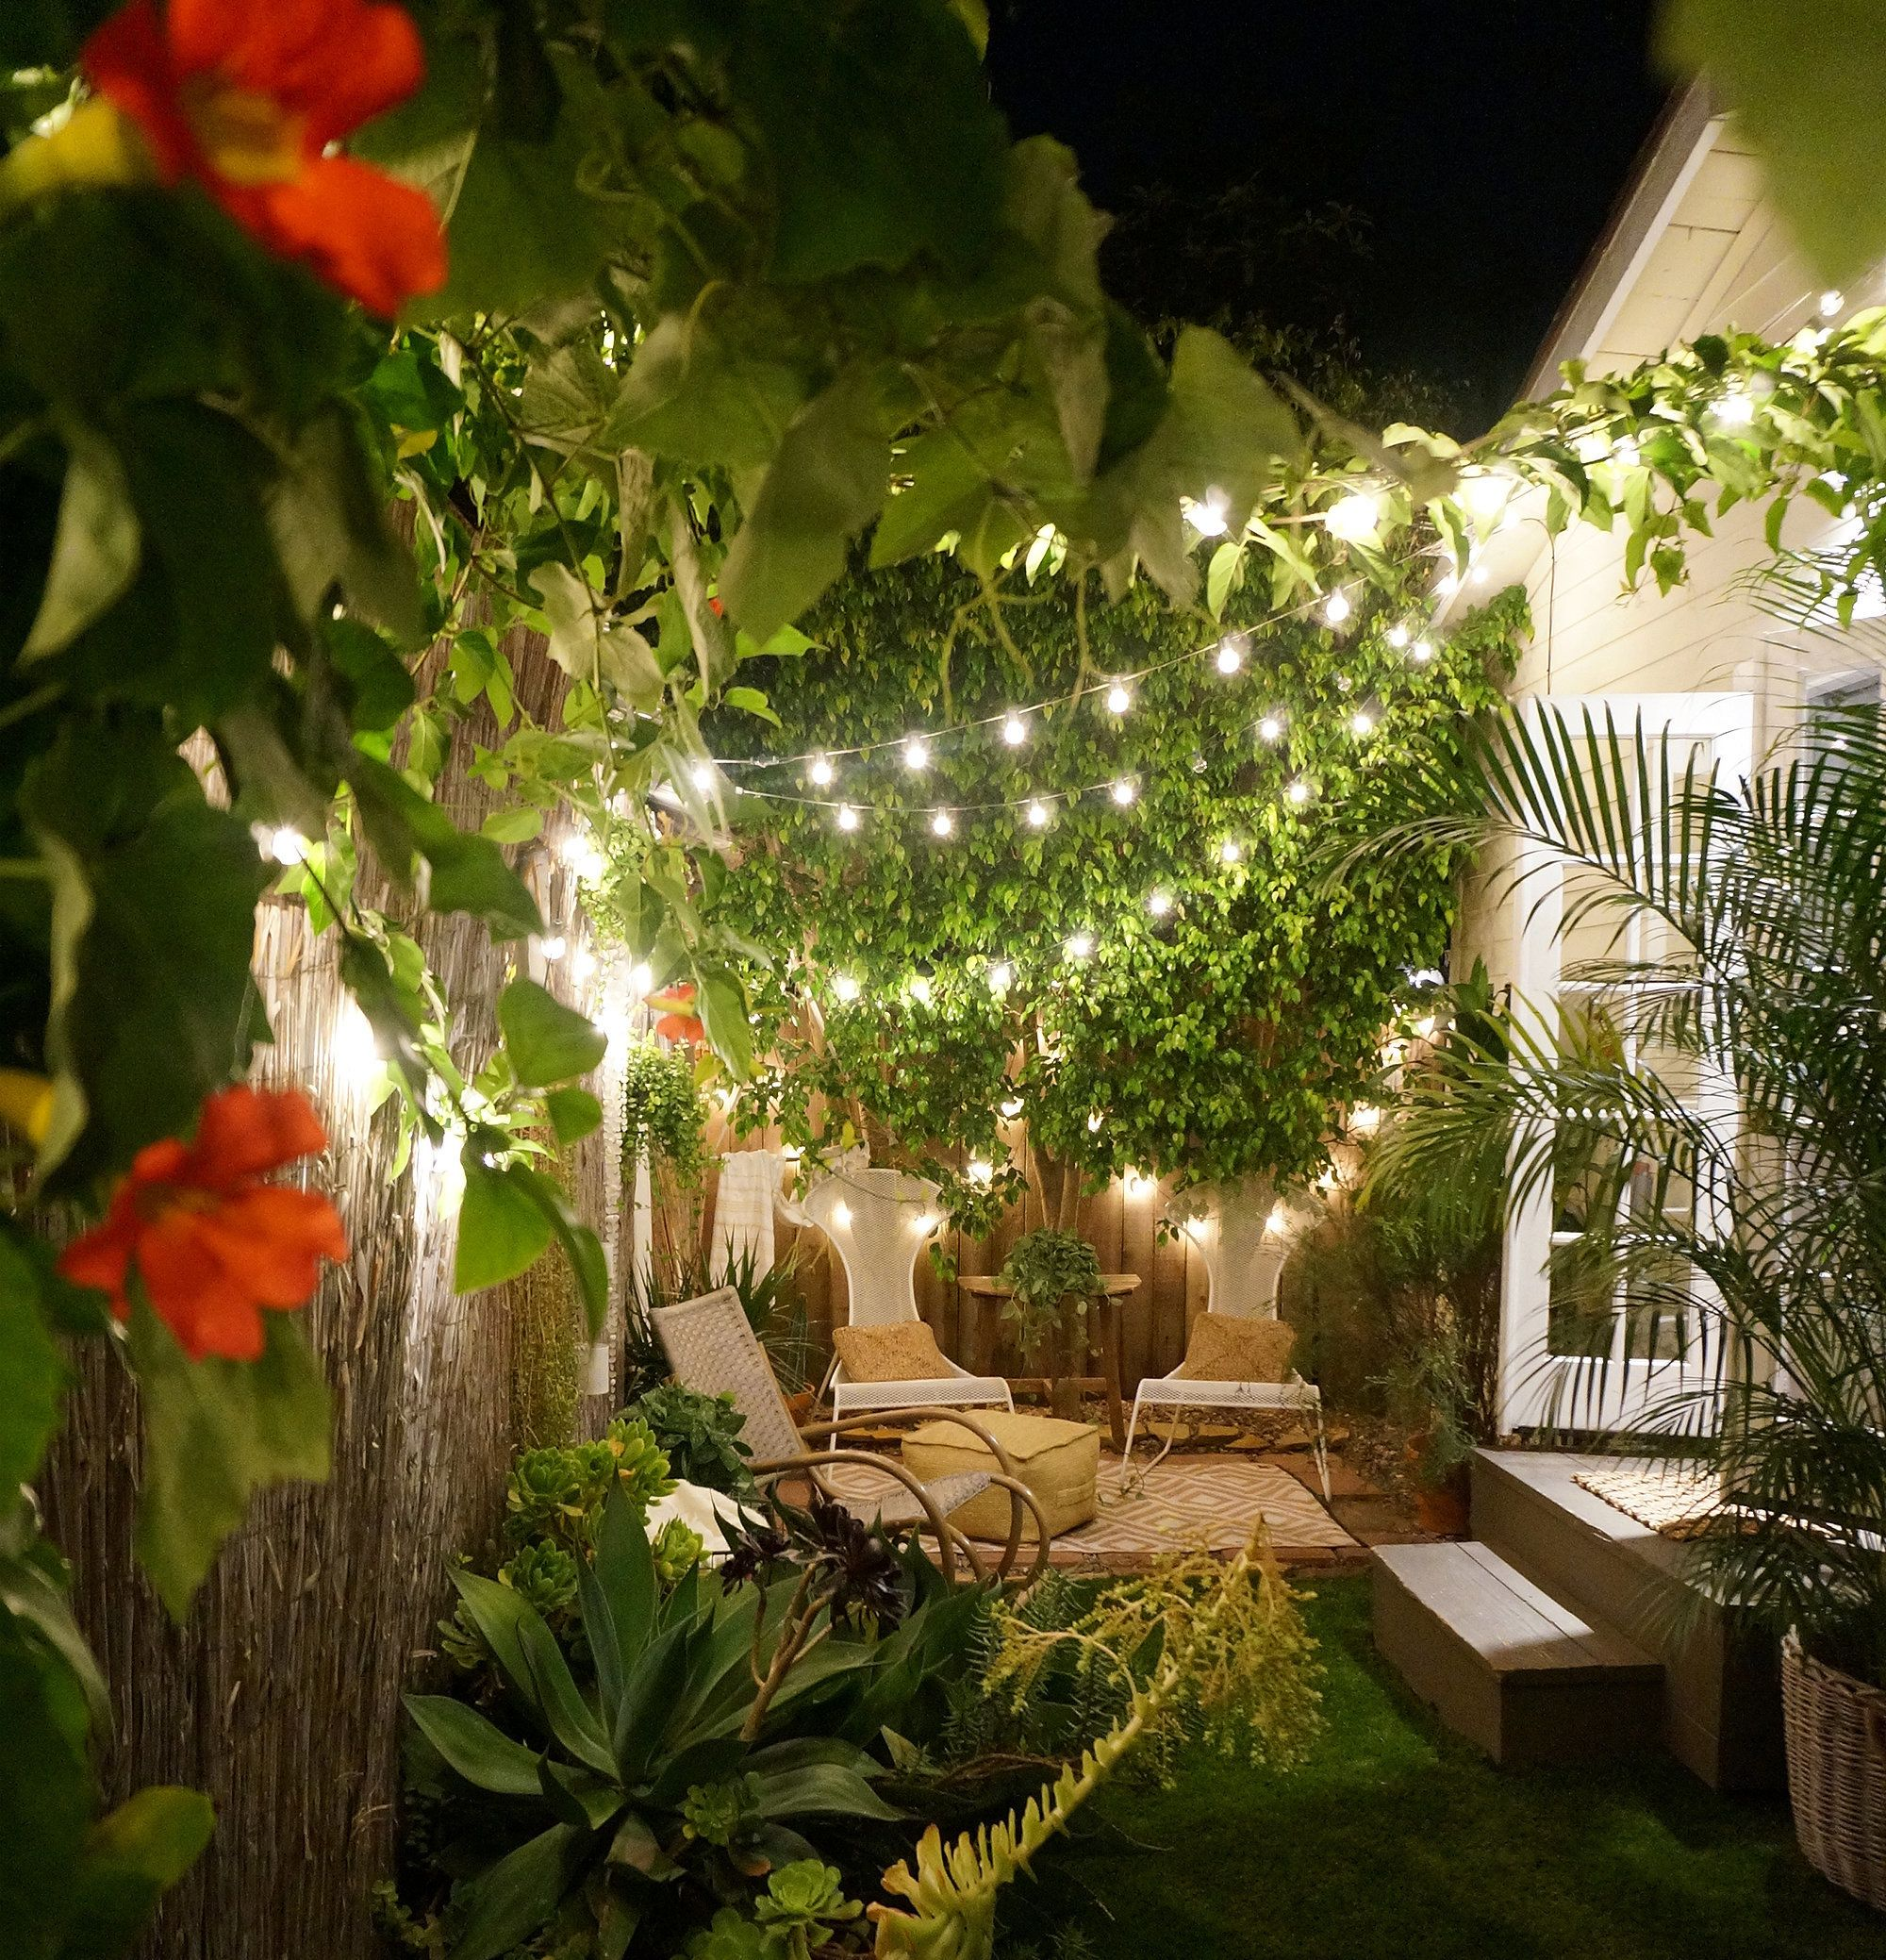 The couple's backyard illuminated by string lights on the night of the wedding.